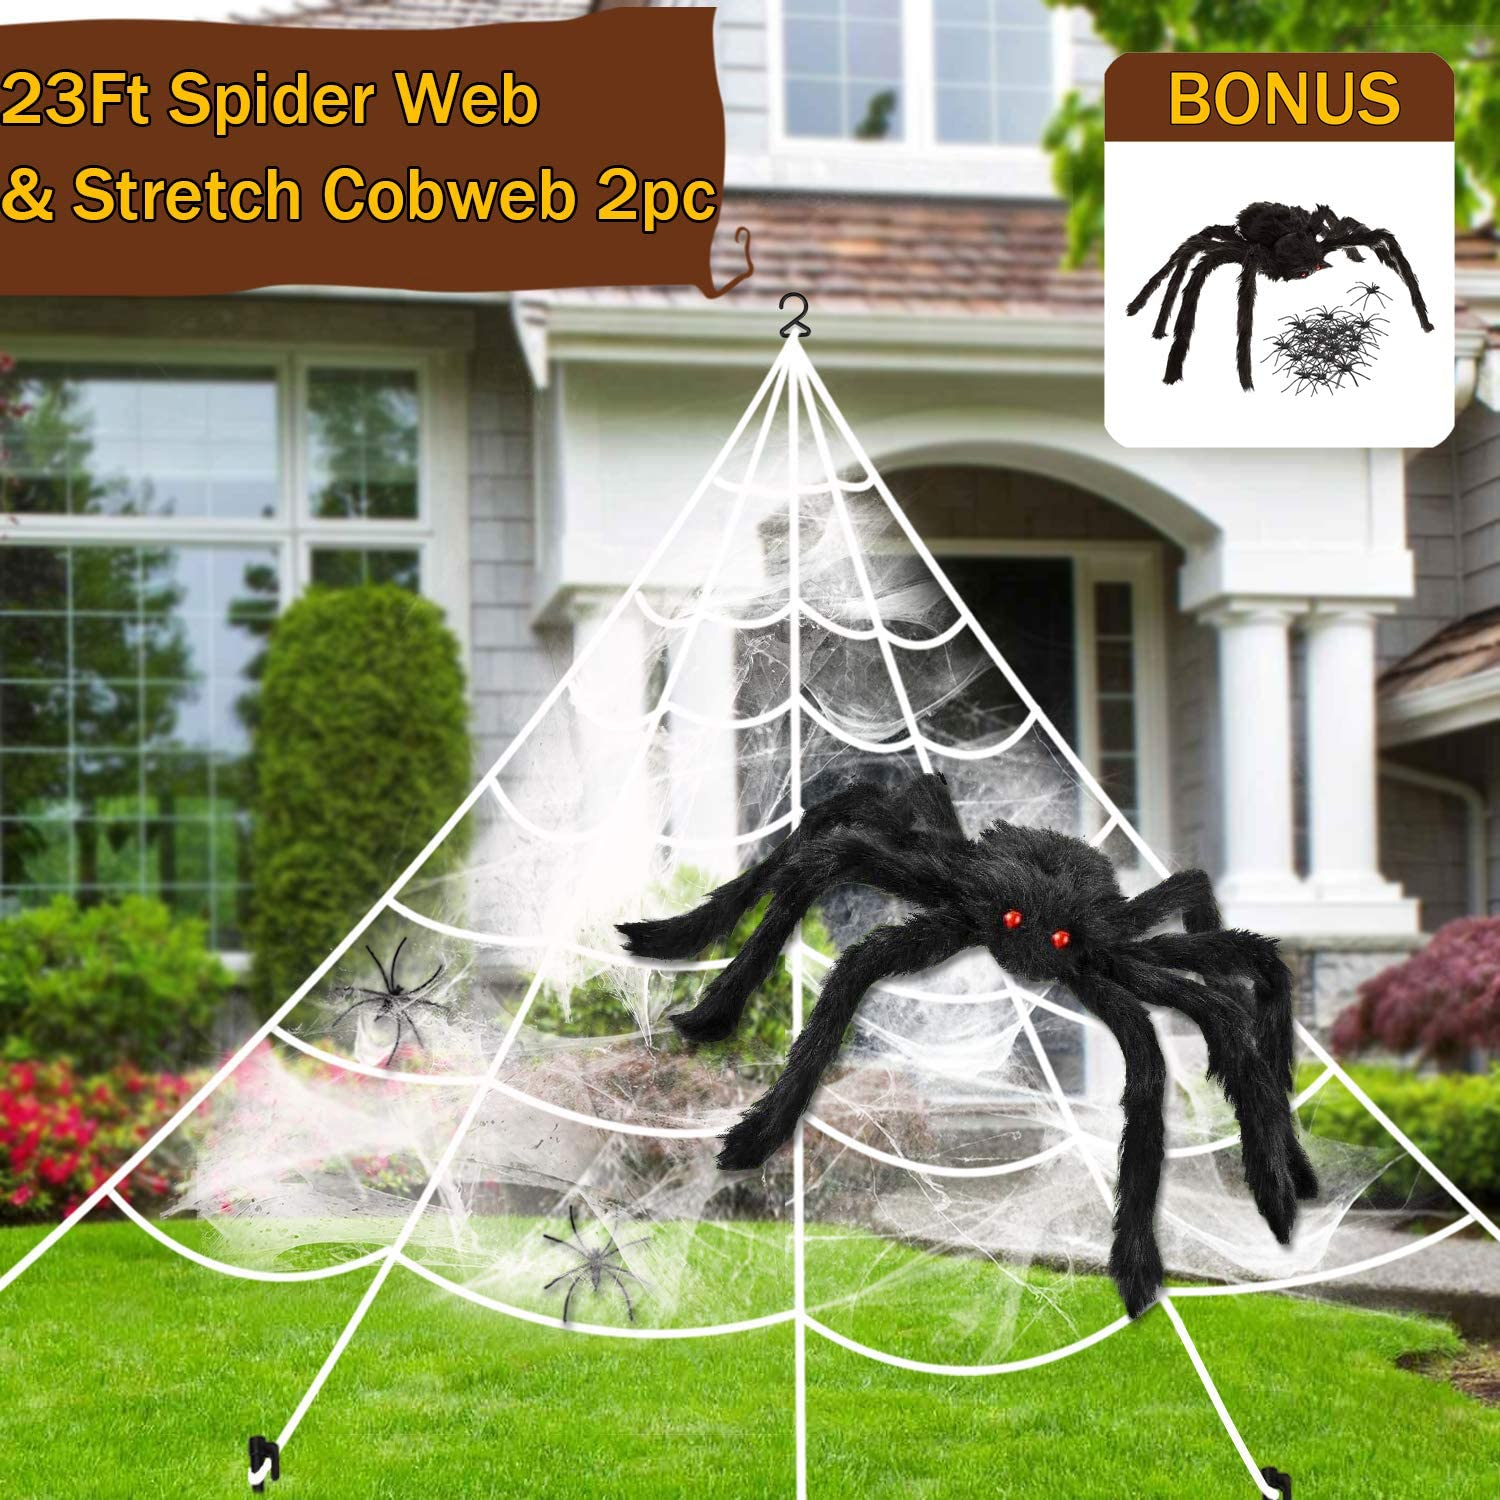 1000 sqft Spider Webs Halloween Decorations 200g//7.05 oz Super Stretch Spider Web Cobwebs Haunted House Yard Creepy Scene Props Indoor Outdoor Decor and Halloween Party Supplies